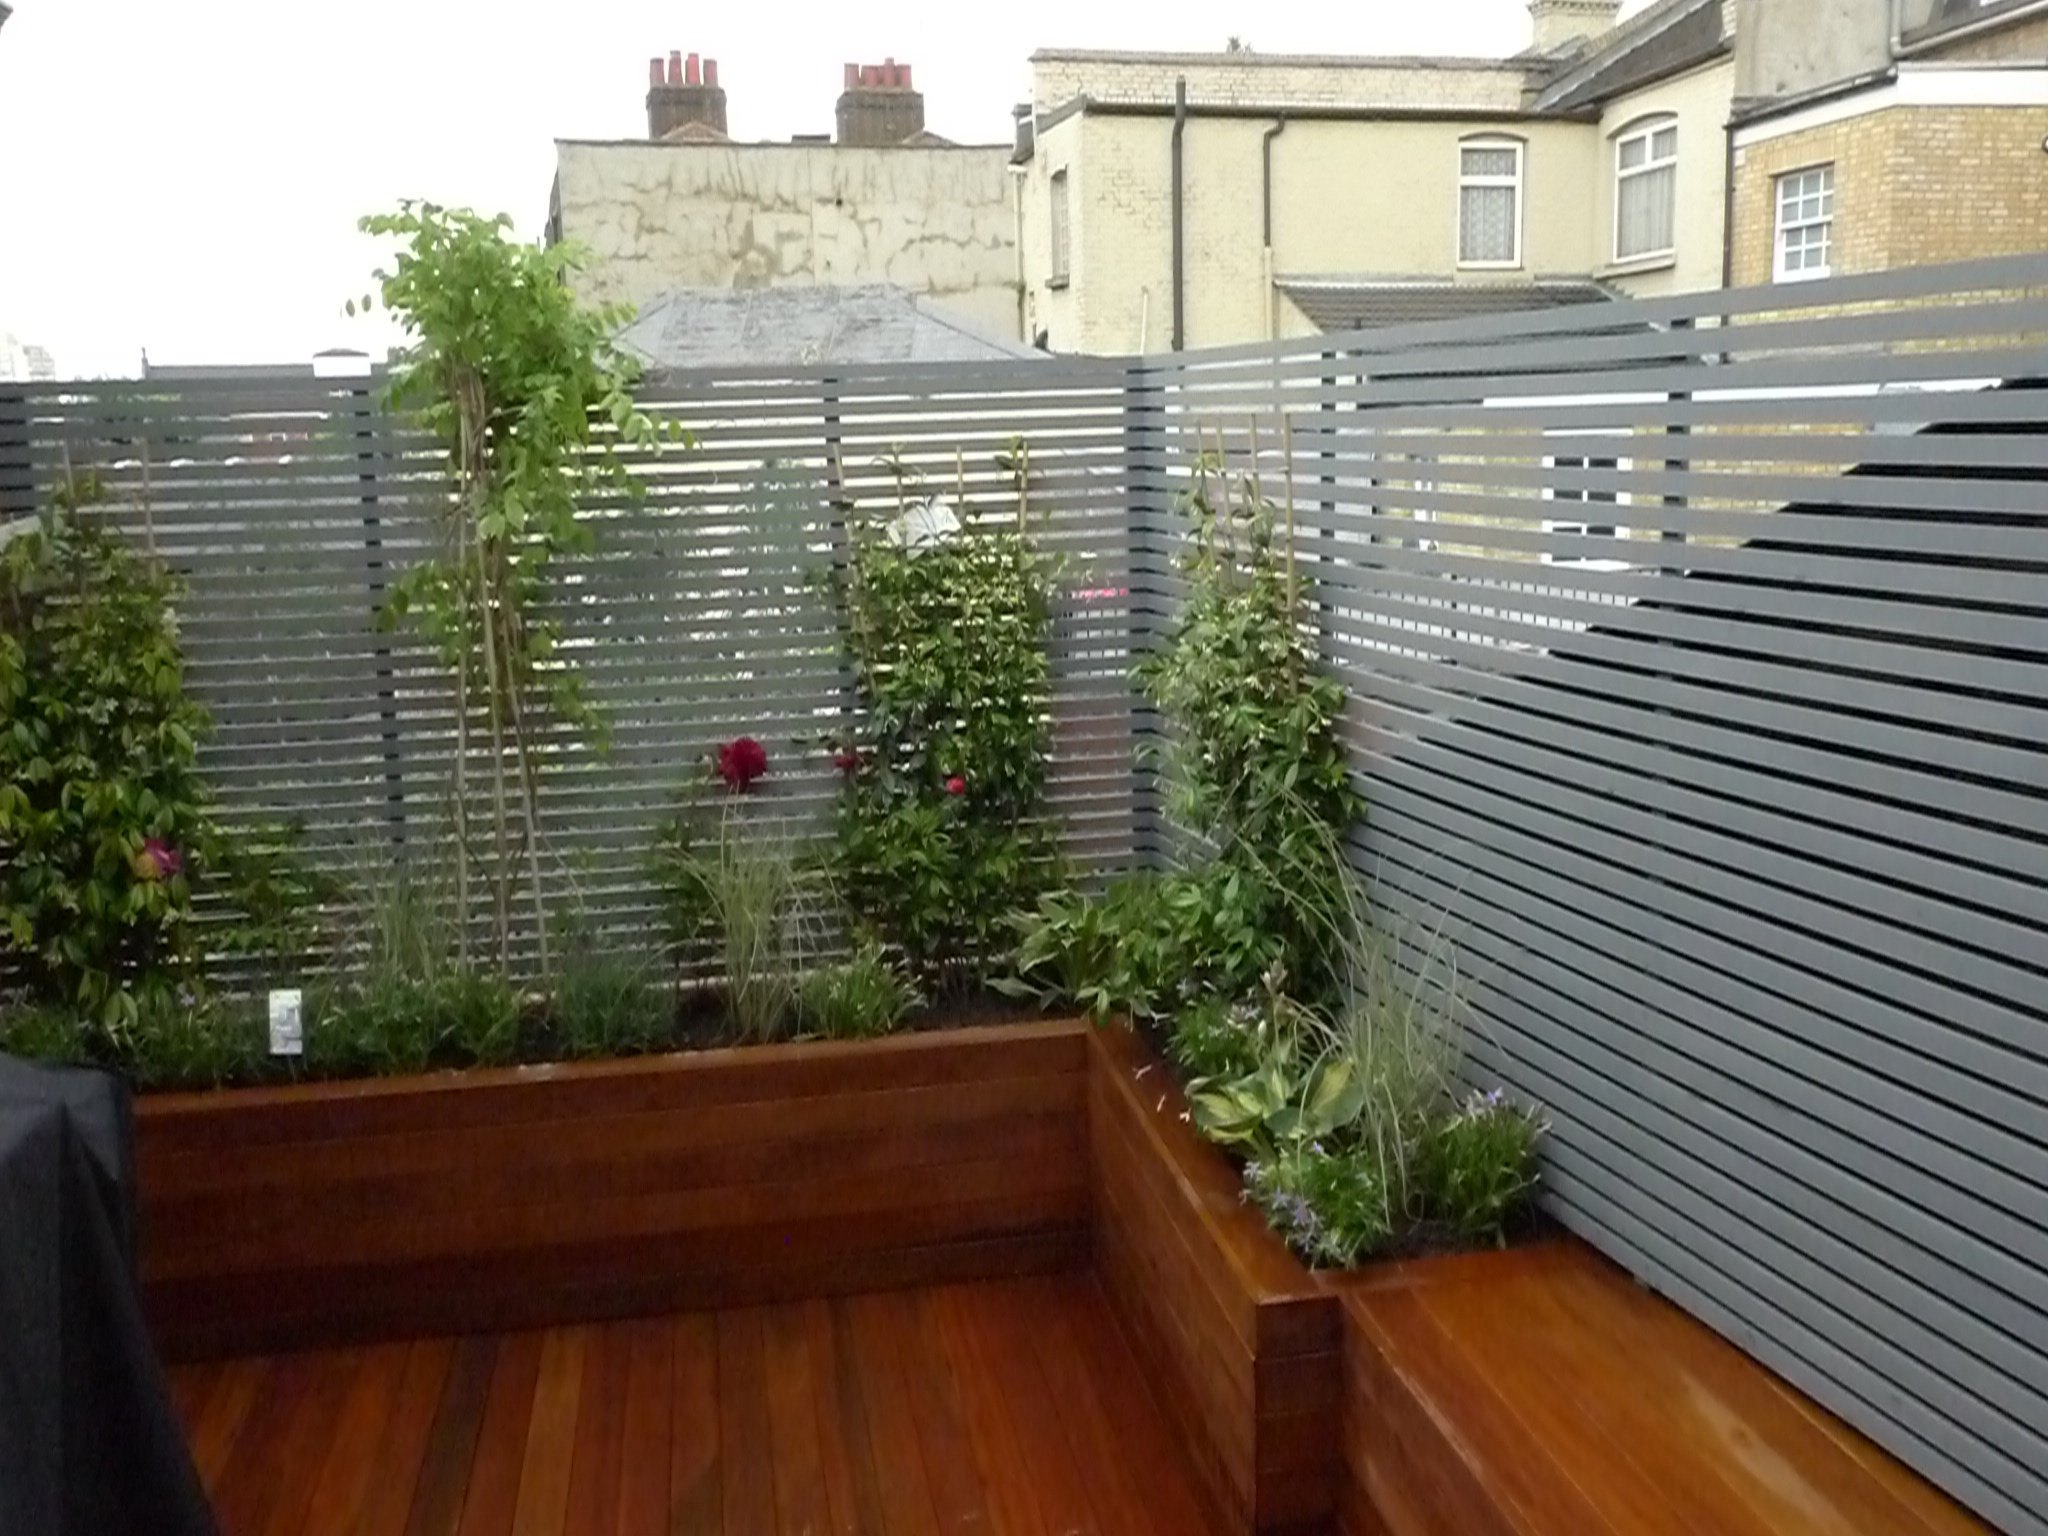 London small roof garden ideas london garden design for Terrace garden designs